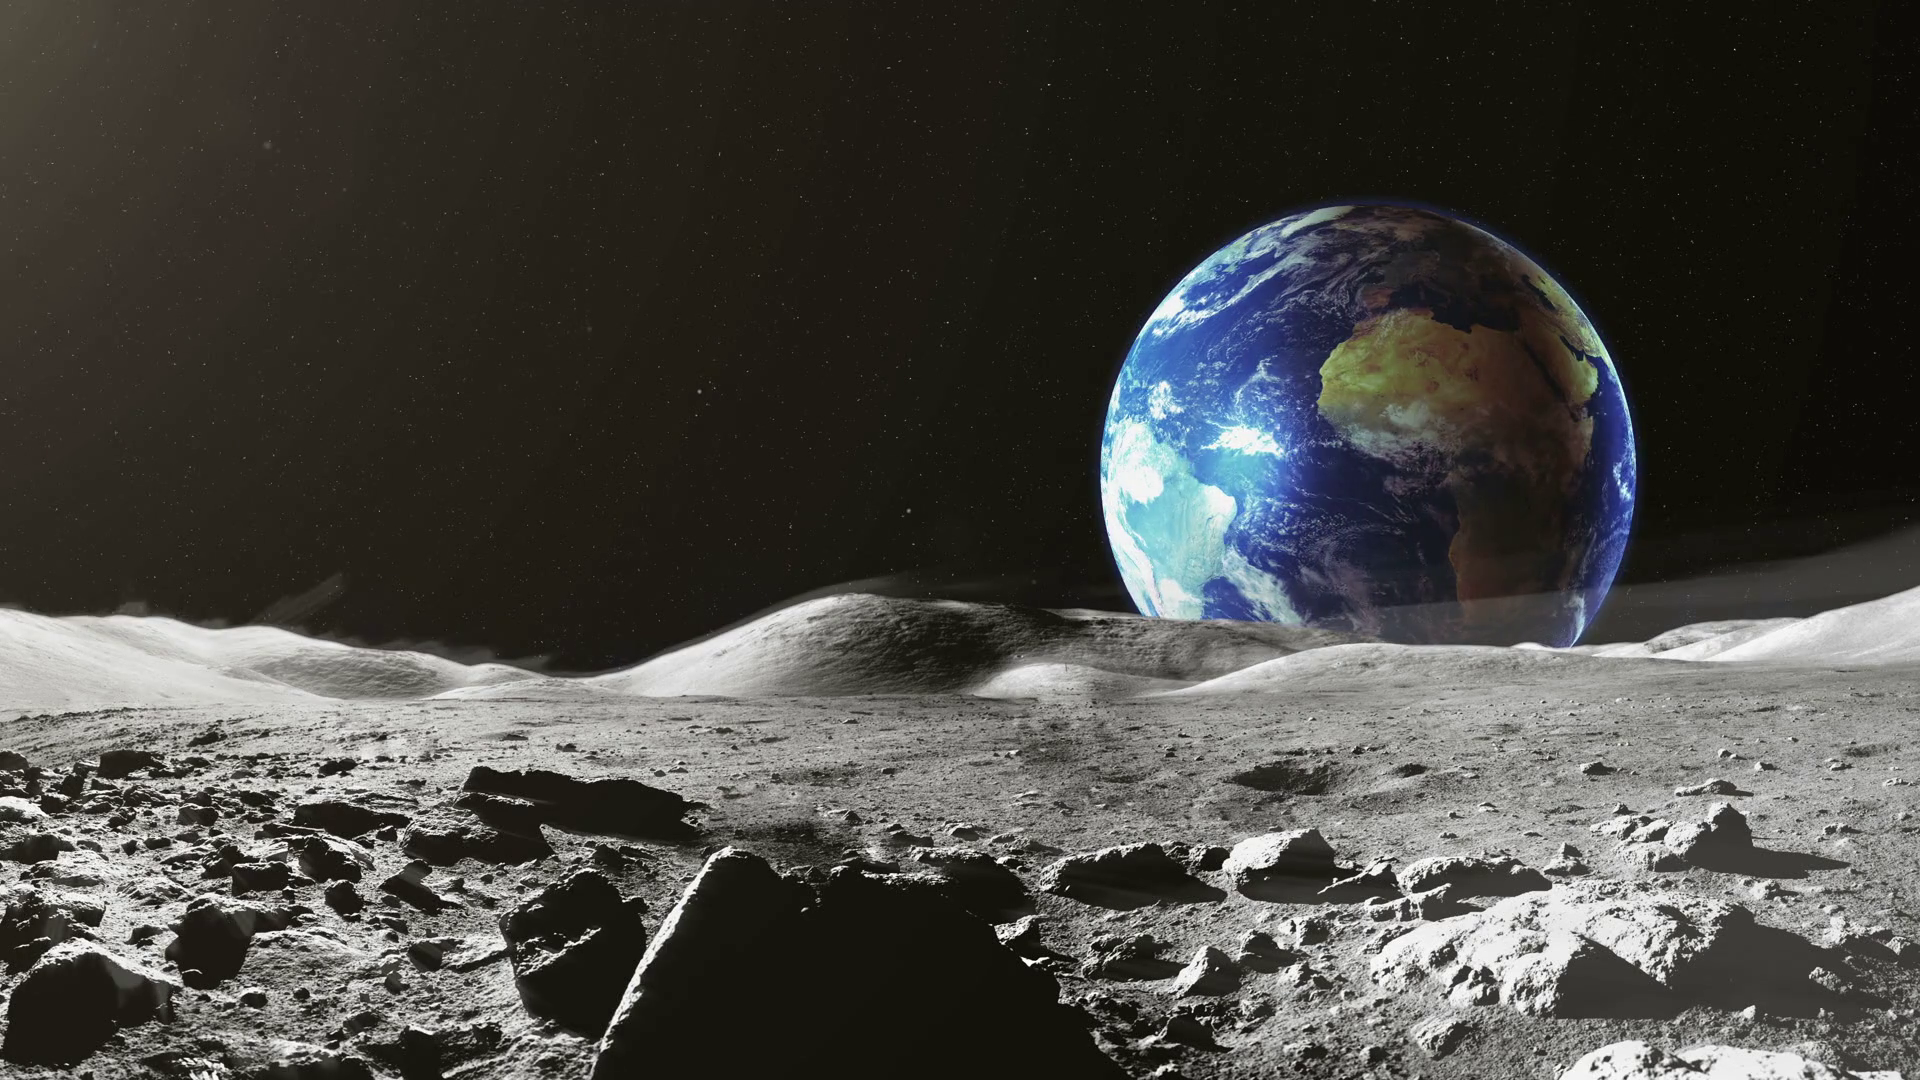 earth-view-from-the-moon-surface-beautiful-space-landscape_bxnii4l9e_thumbnail-full01.png